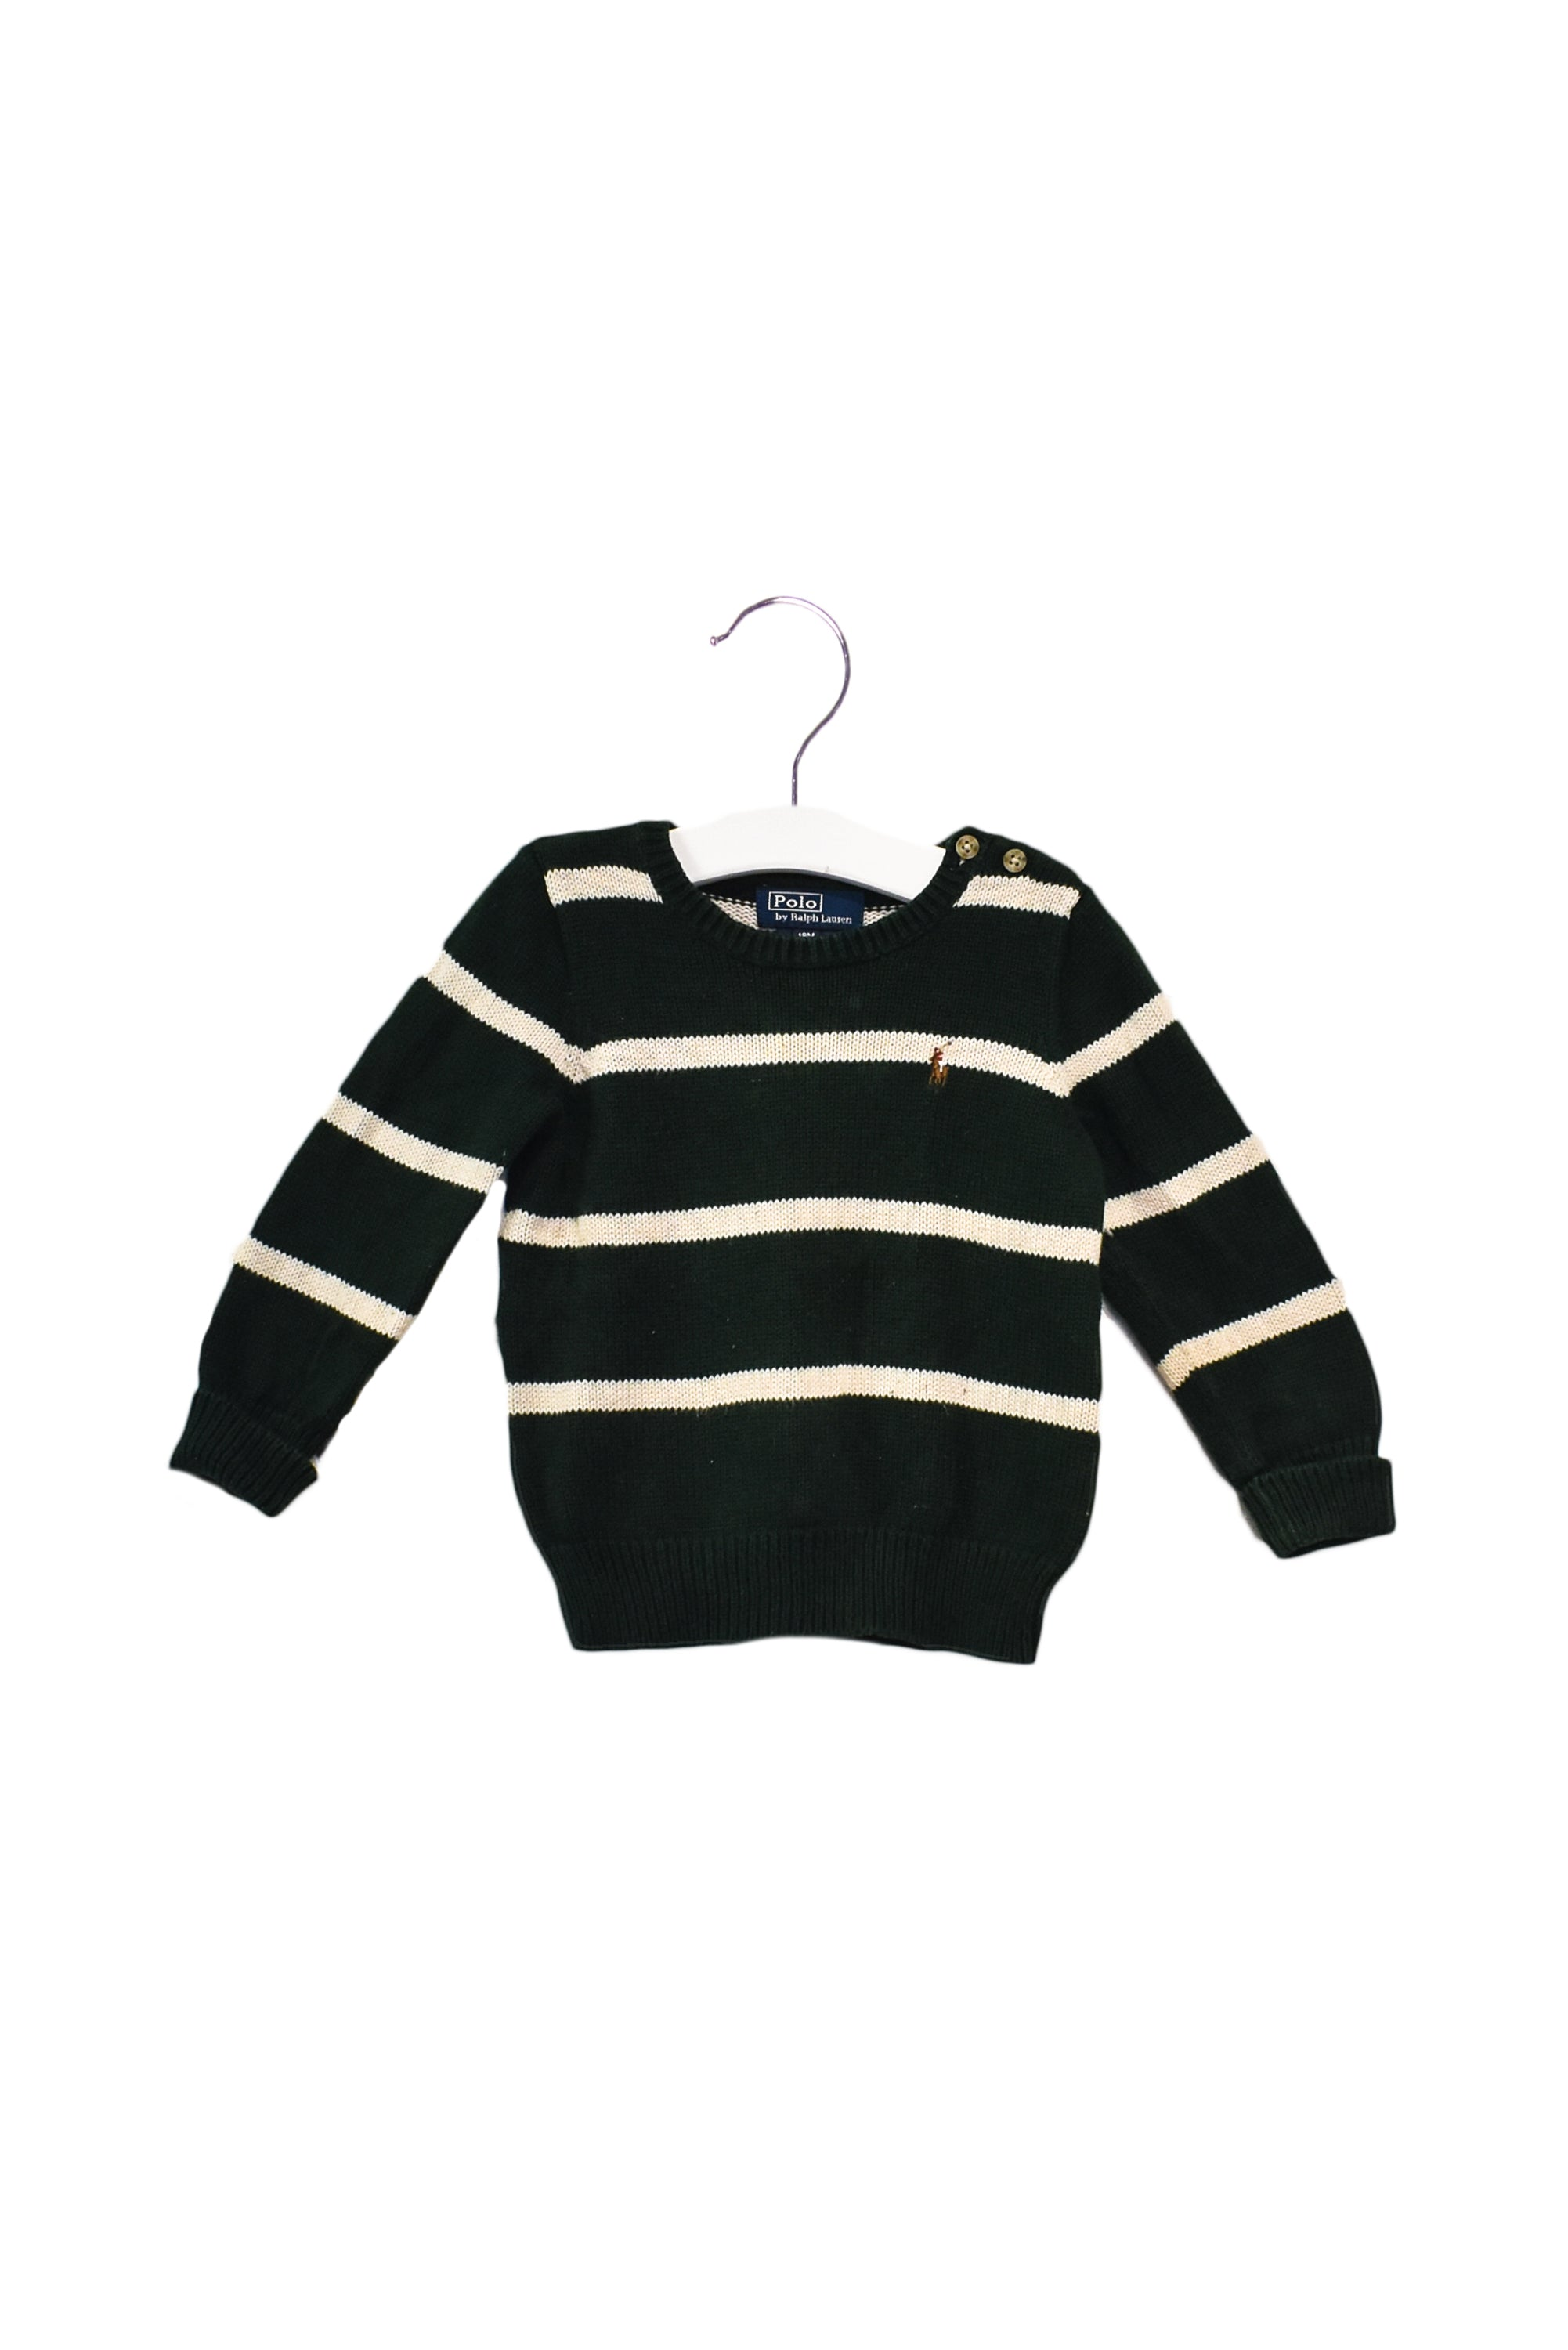 10028144 Polo Ralph Lauren Baby~Sweater 18M at Retykle